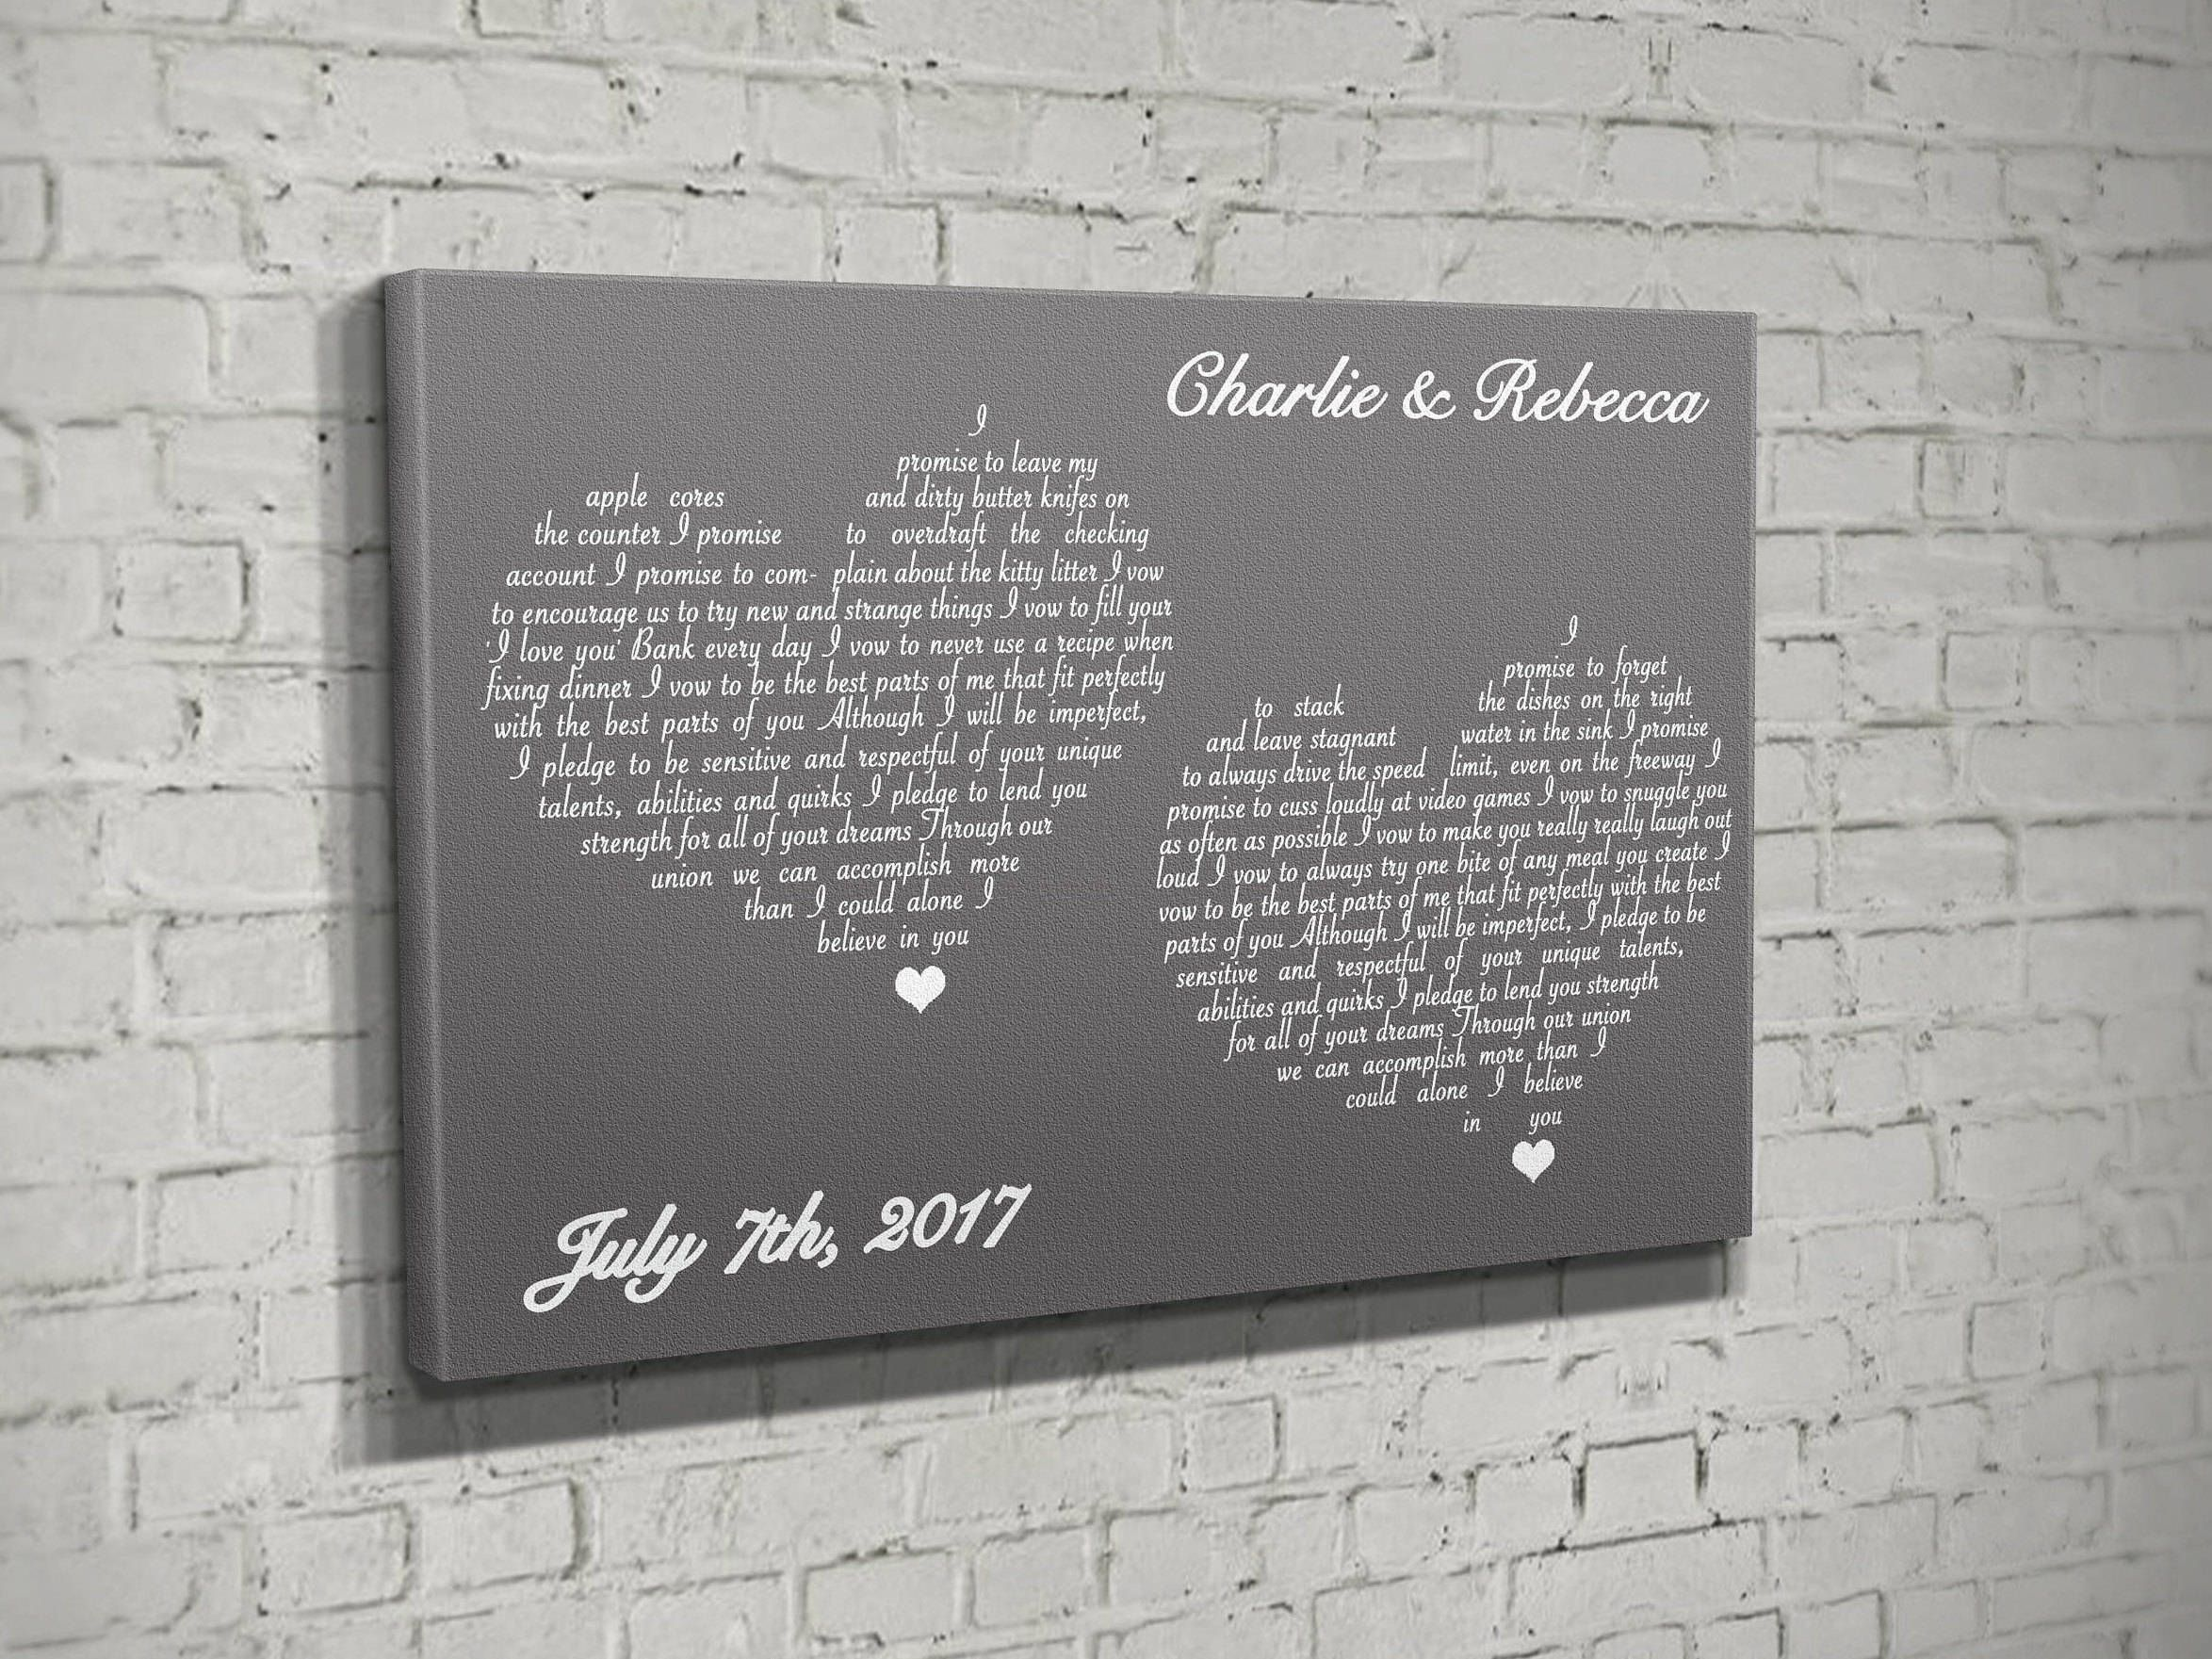 Wedding vow renewal on canvas, custom vow keepsake, vows